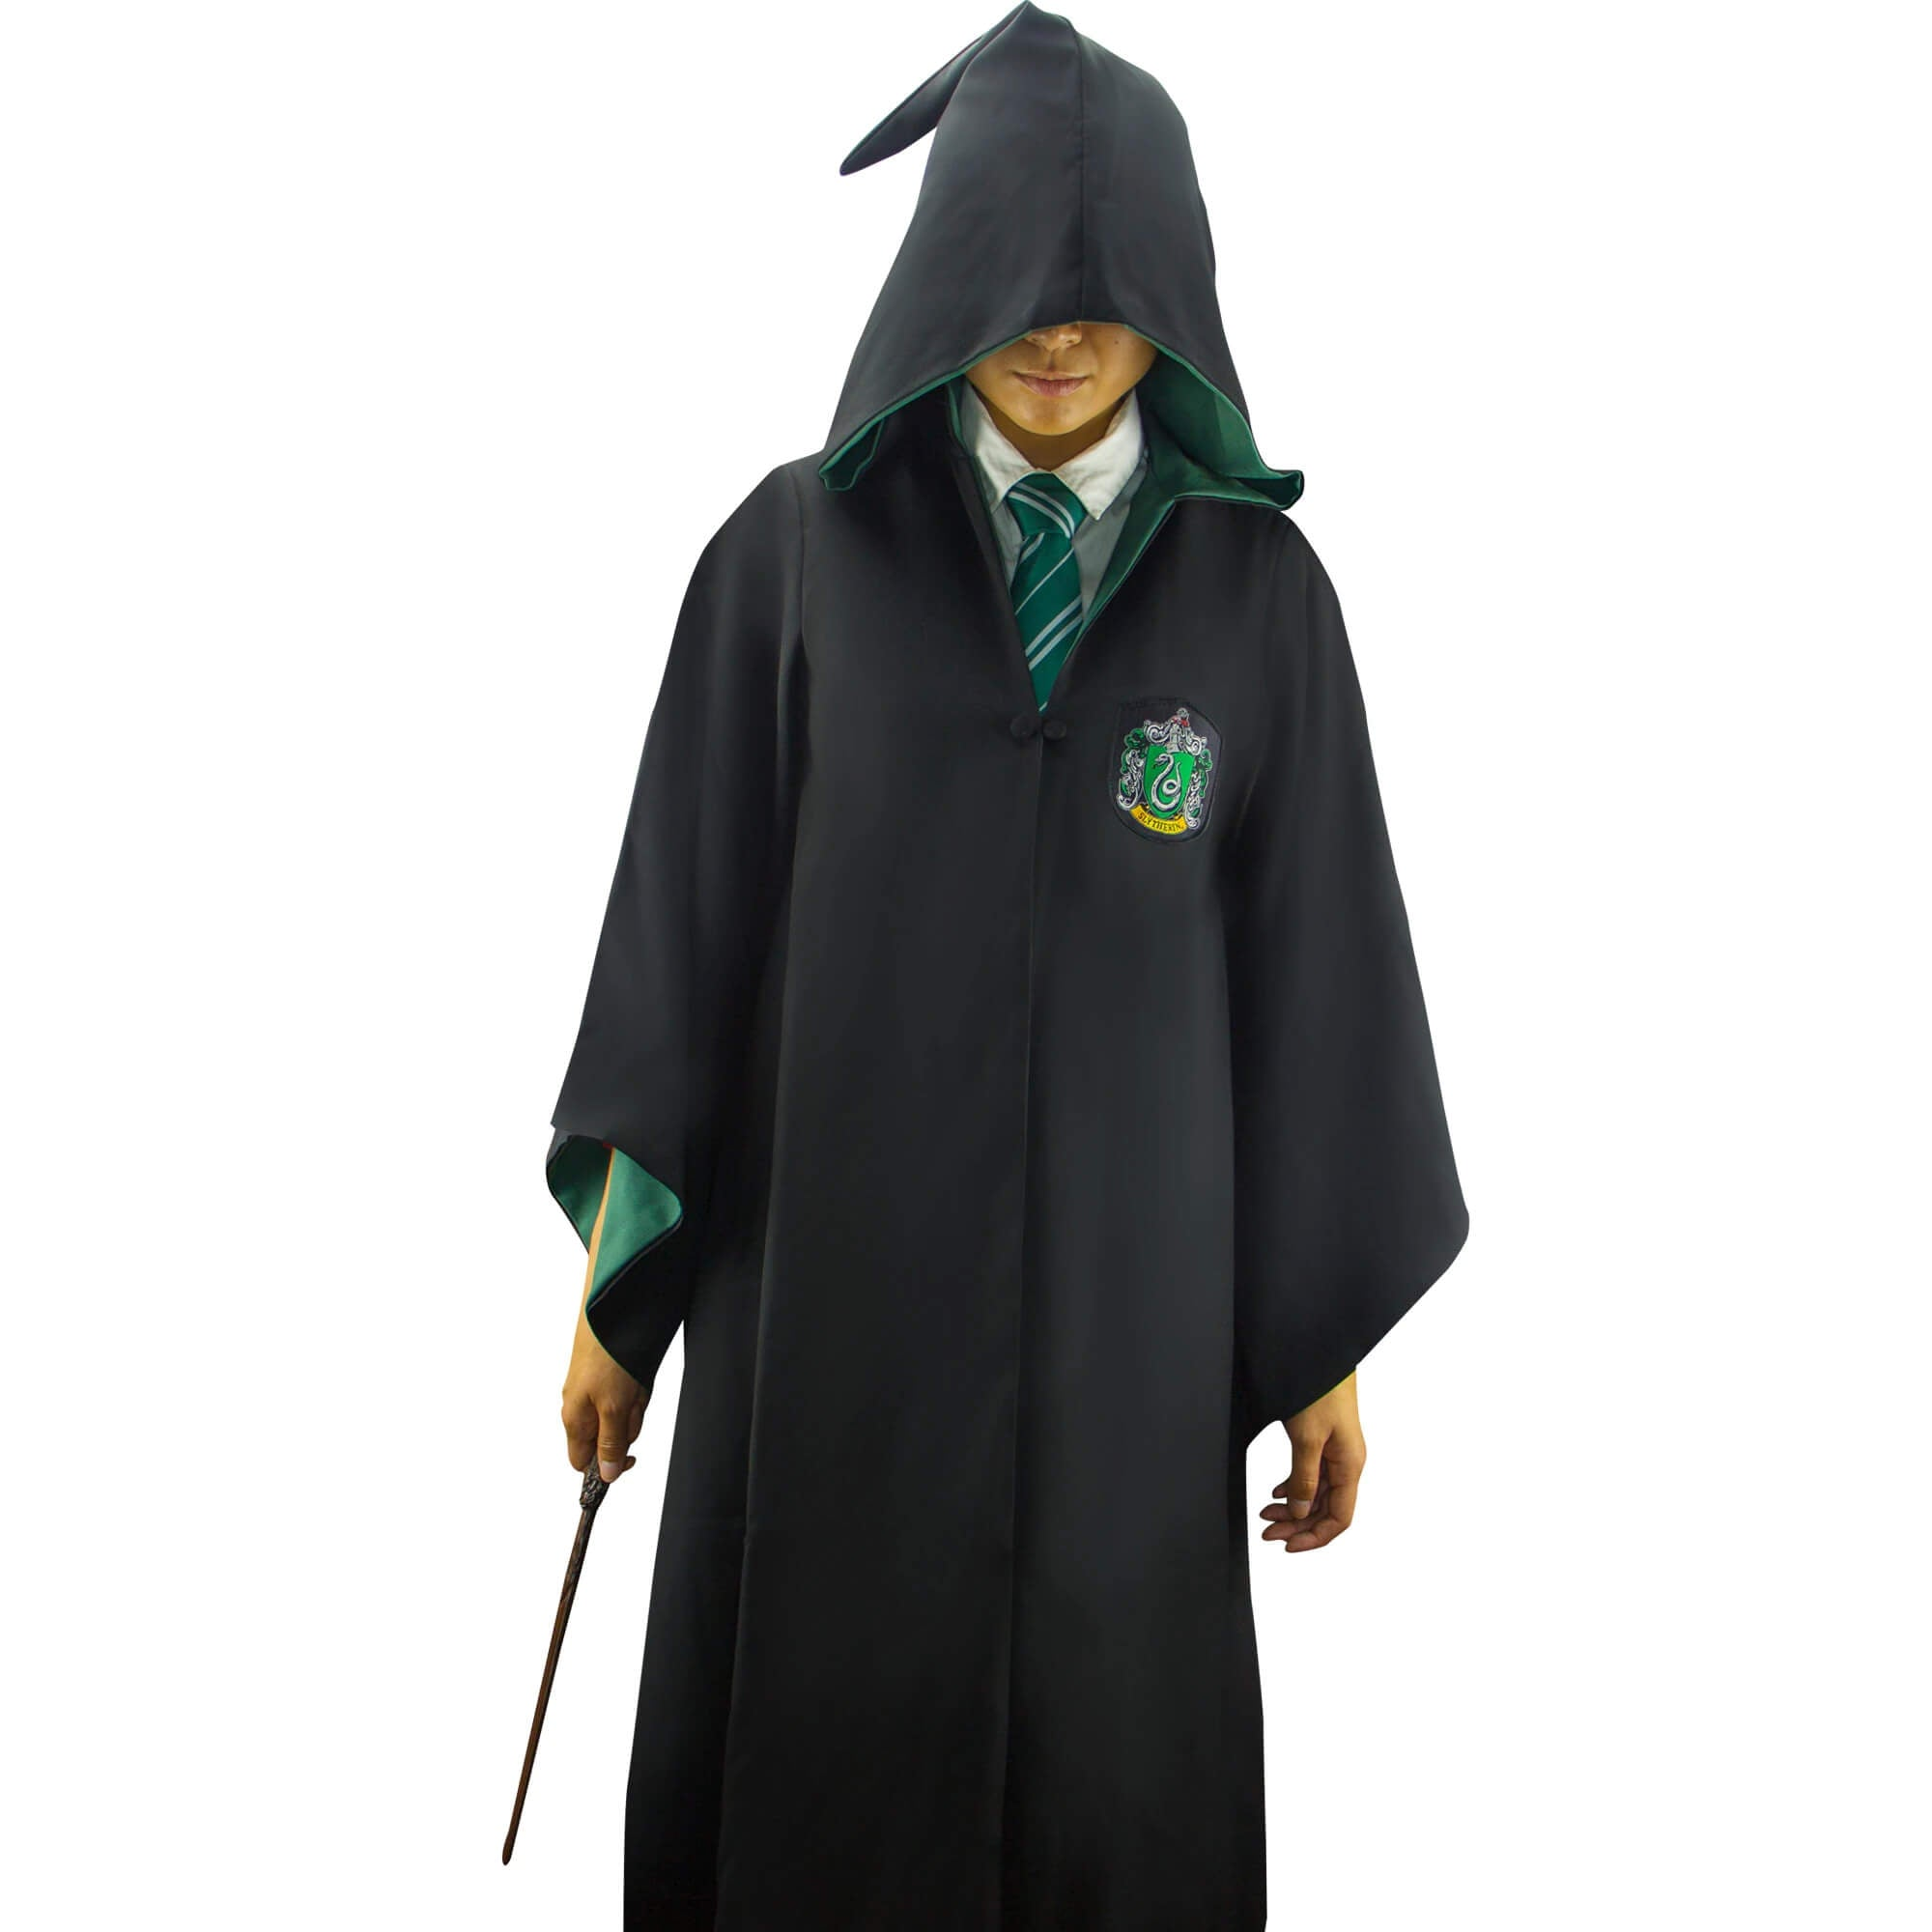 RÉPLIQUE ROBE DE SORCIER SERPENTARD - HARRY POTTER